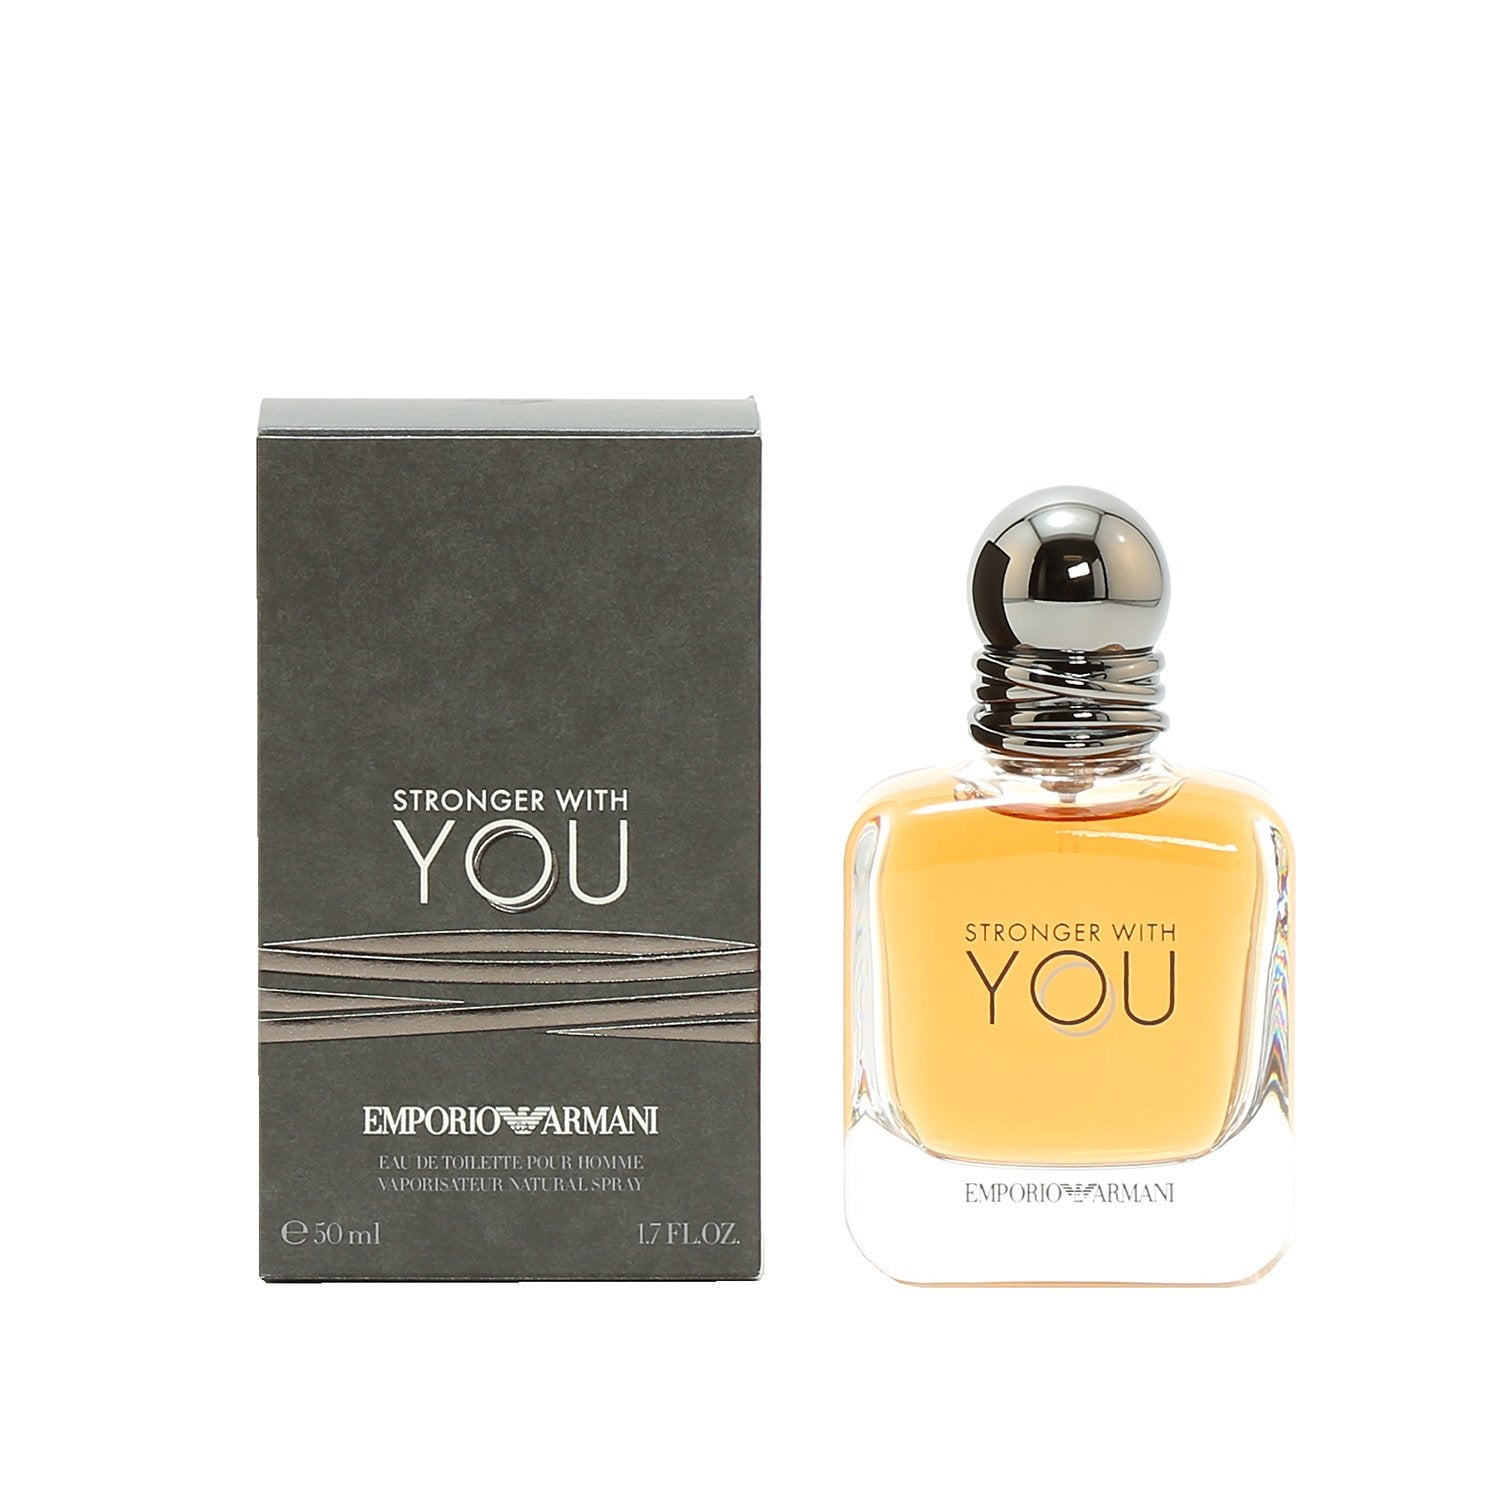 Cologne - ARMANI STRONGER WITH YOU FOR MEN - EAU DE TOILETTE SPRAY, 1.7 OZ